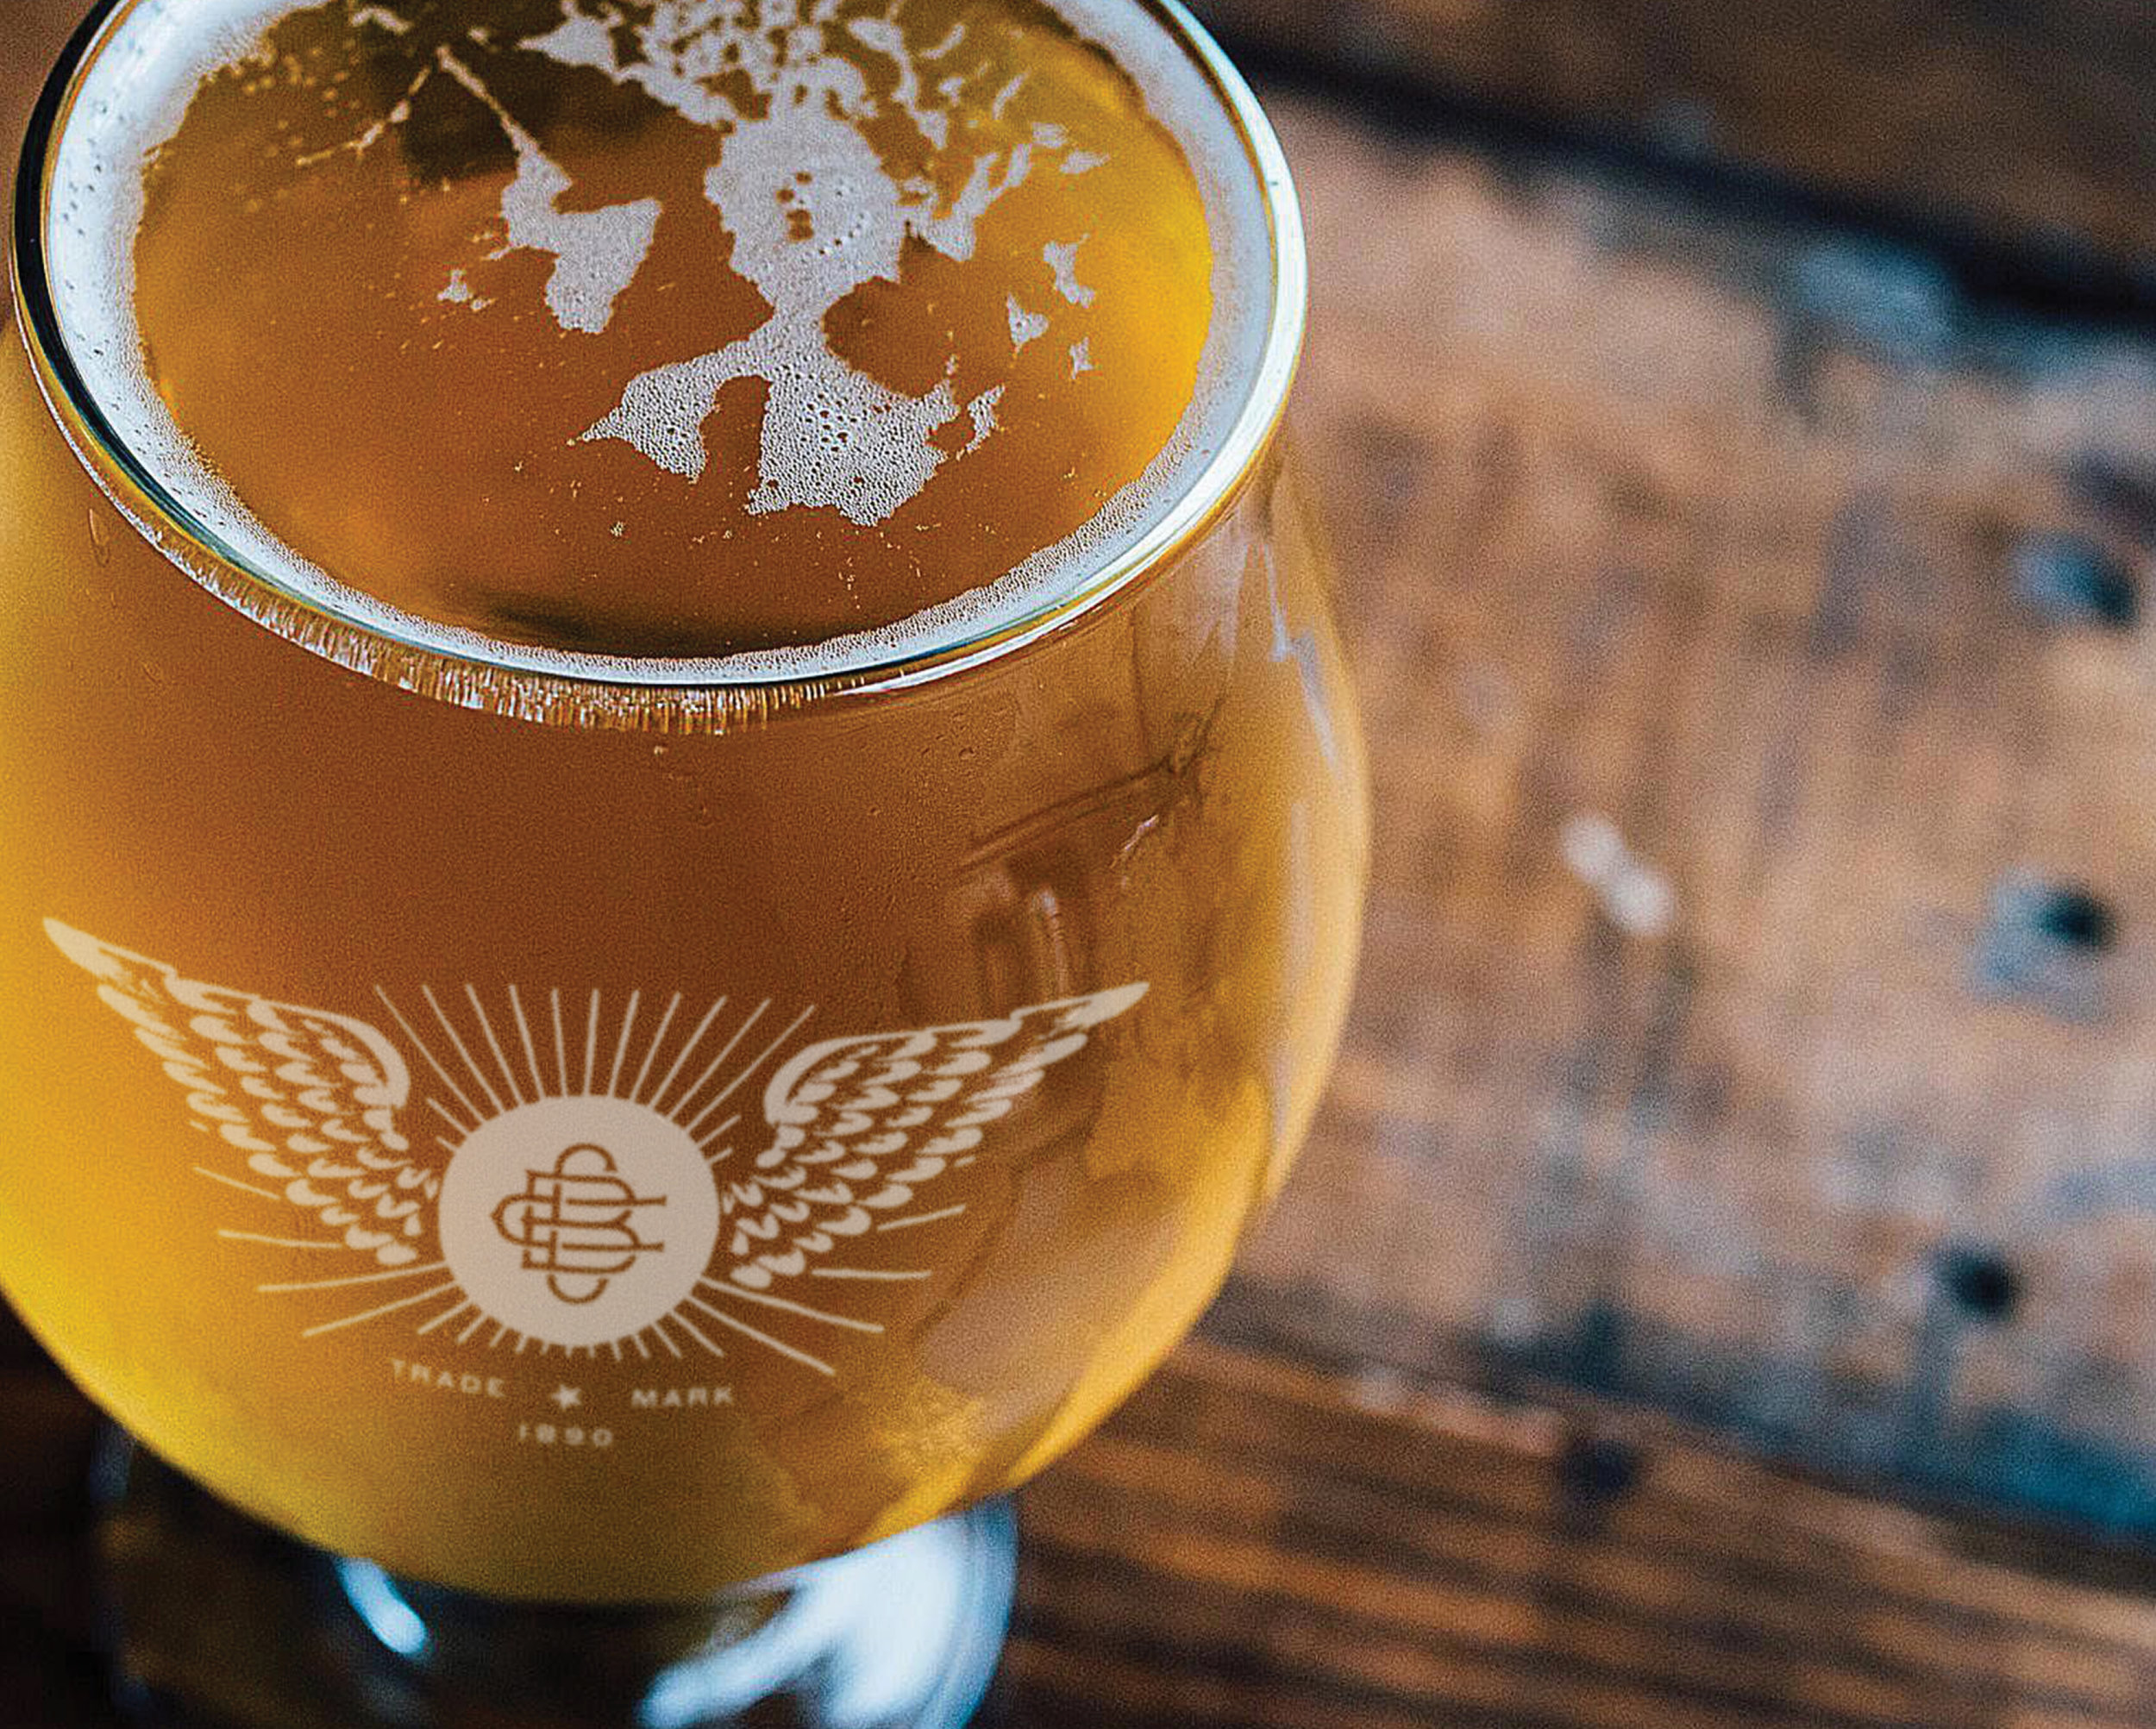 Chattanooga_Brewing_Submission2.jpg